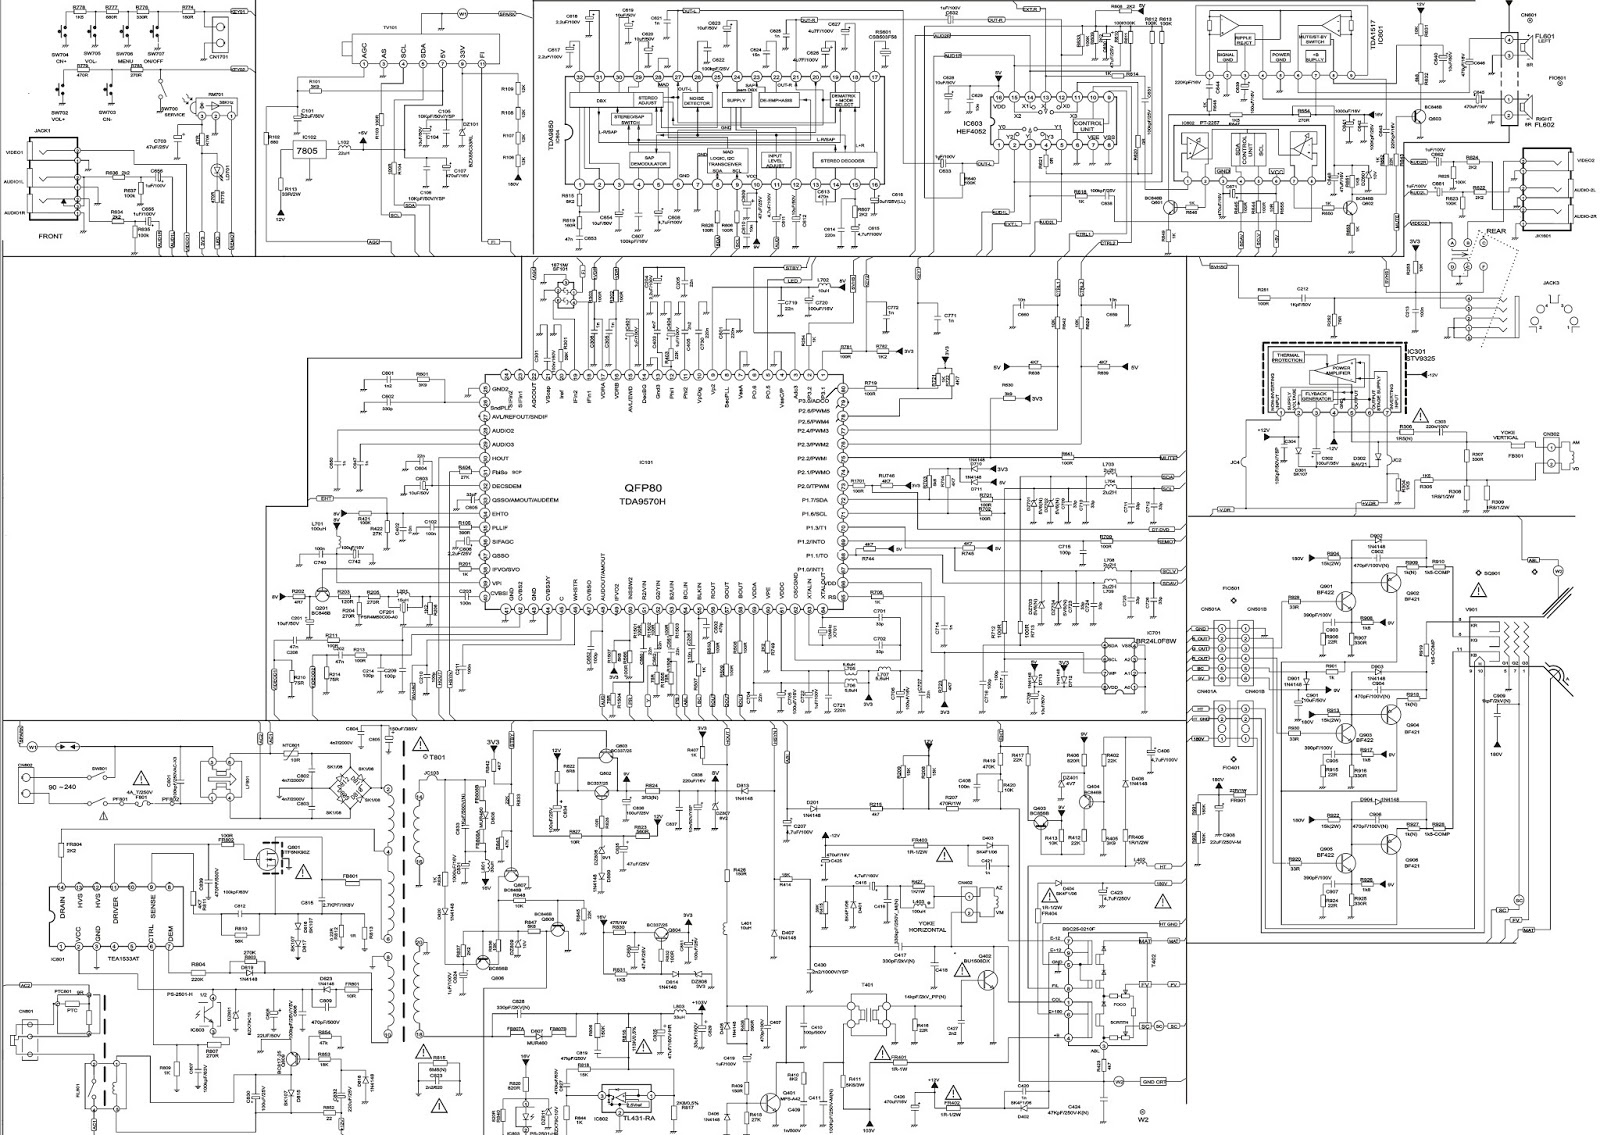 Crt Tv Schematic Diagram  Crt Tv Circuit Board Diagram